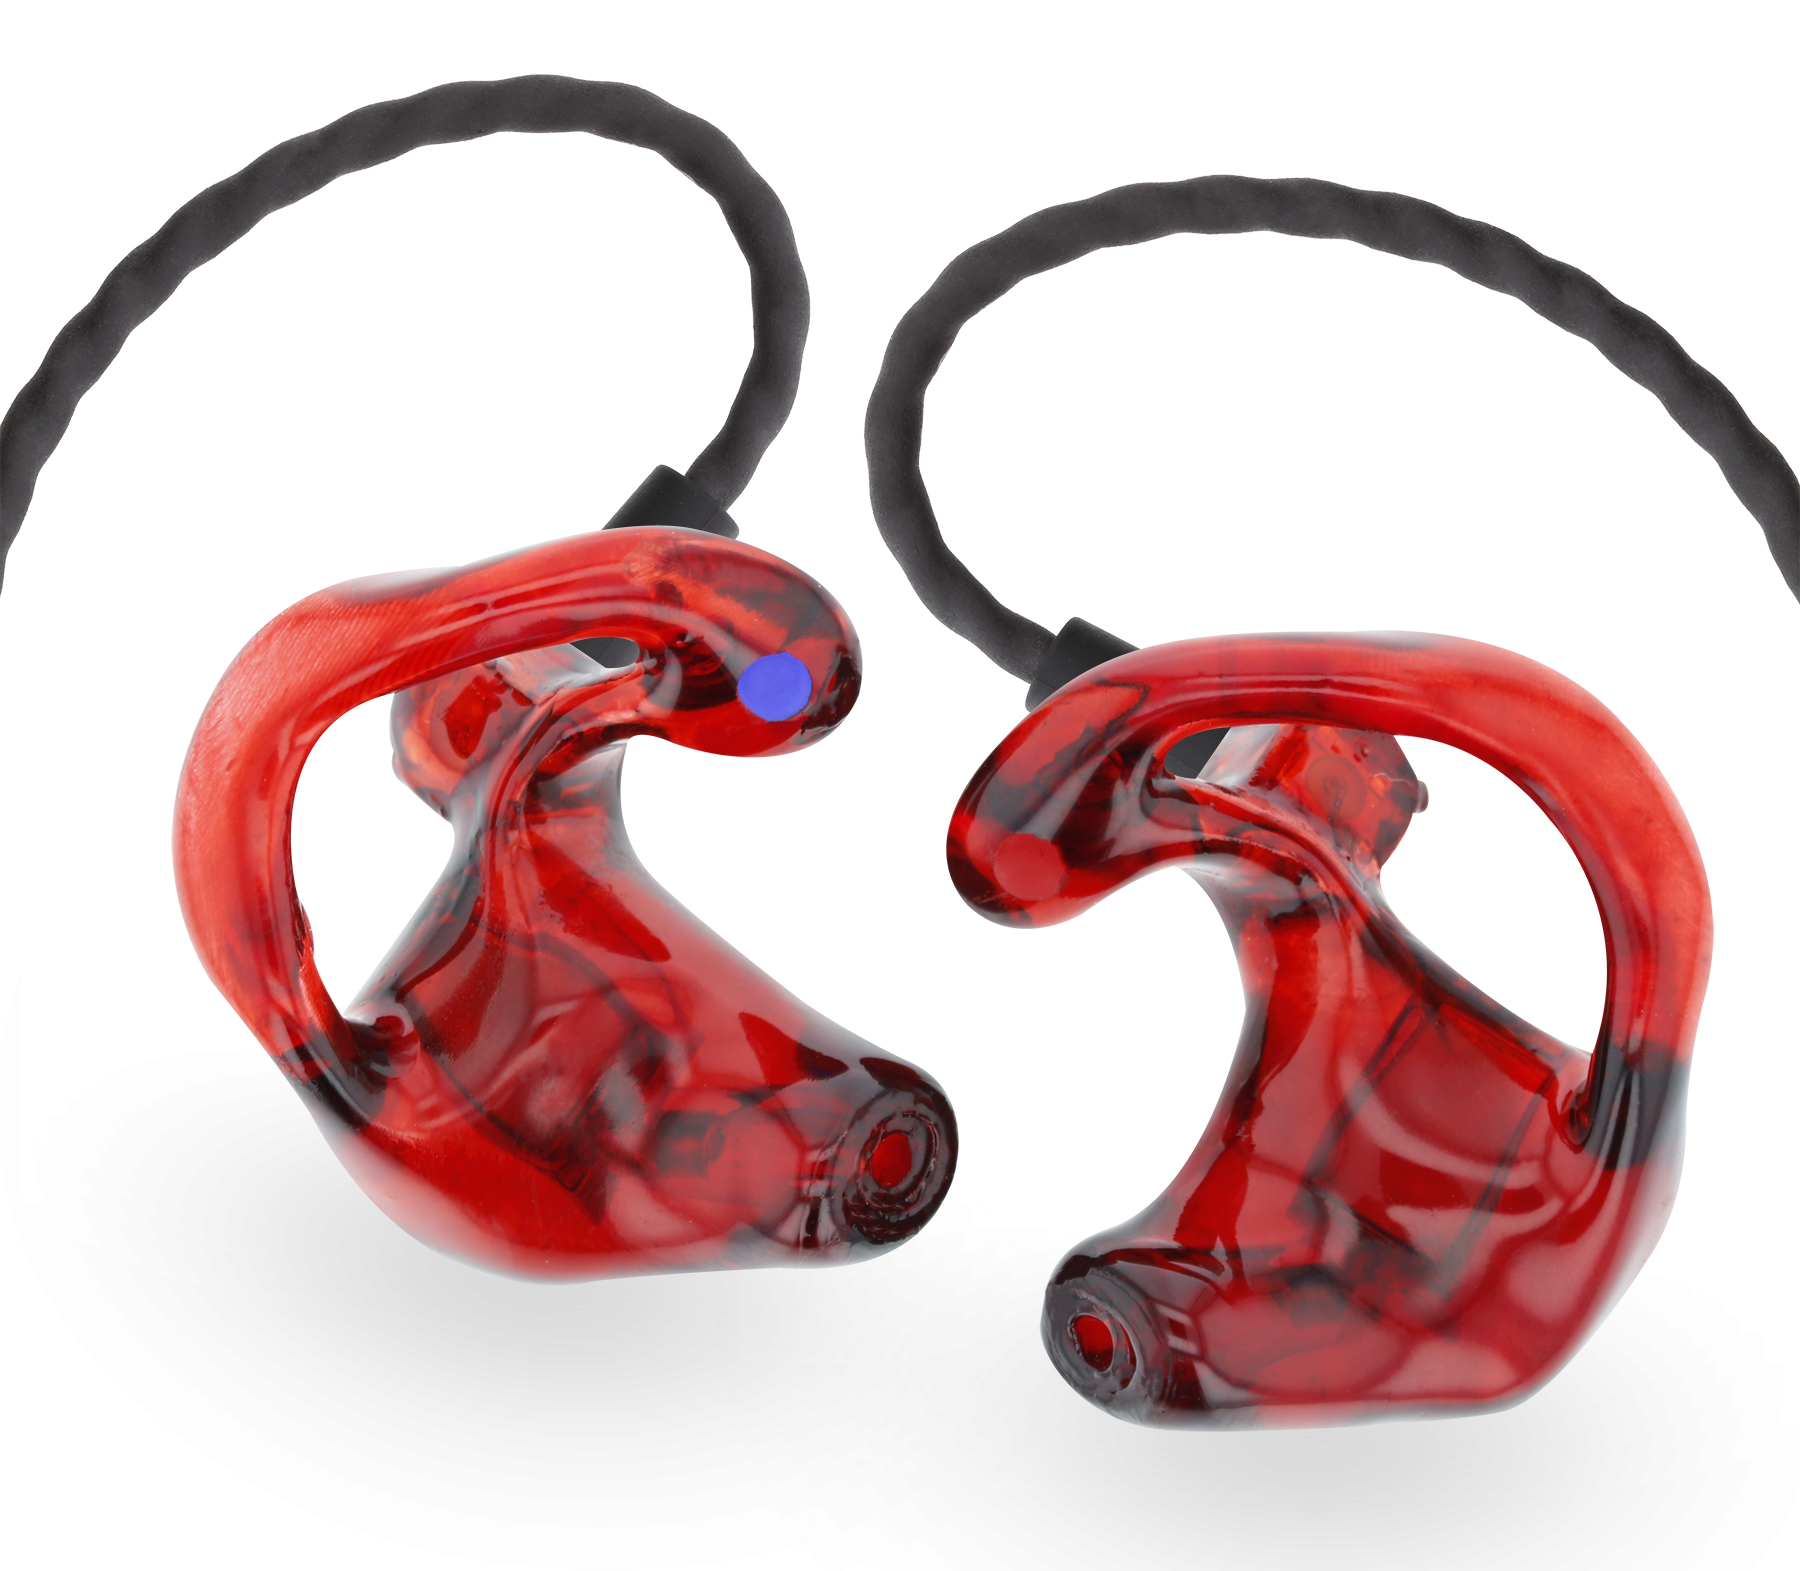 S 20 Earphones